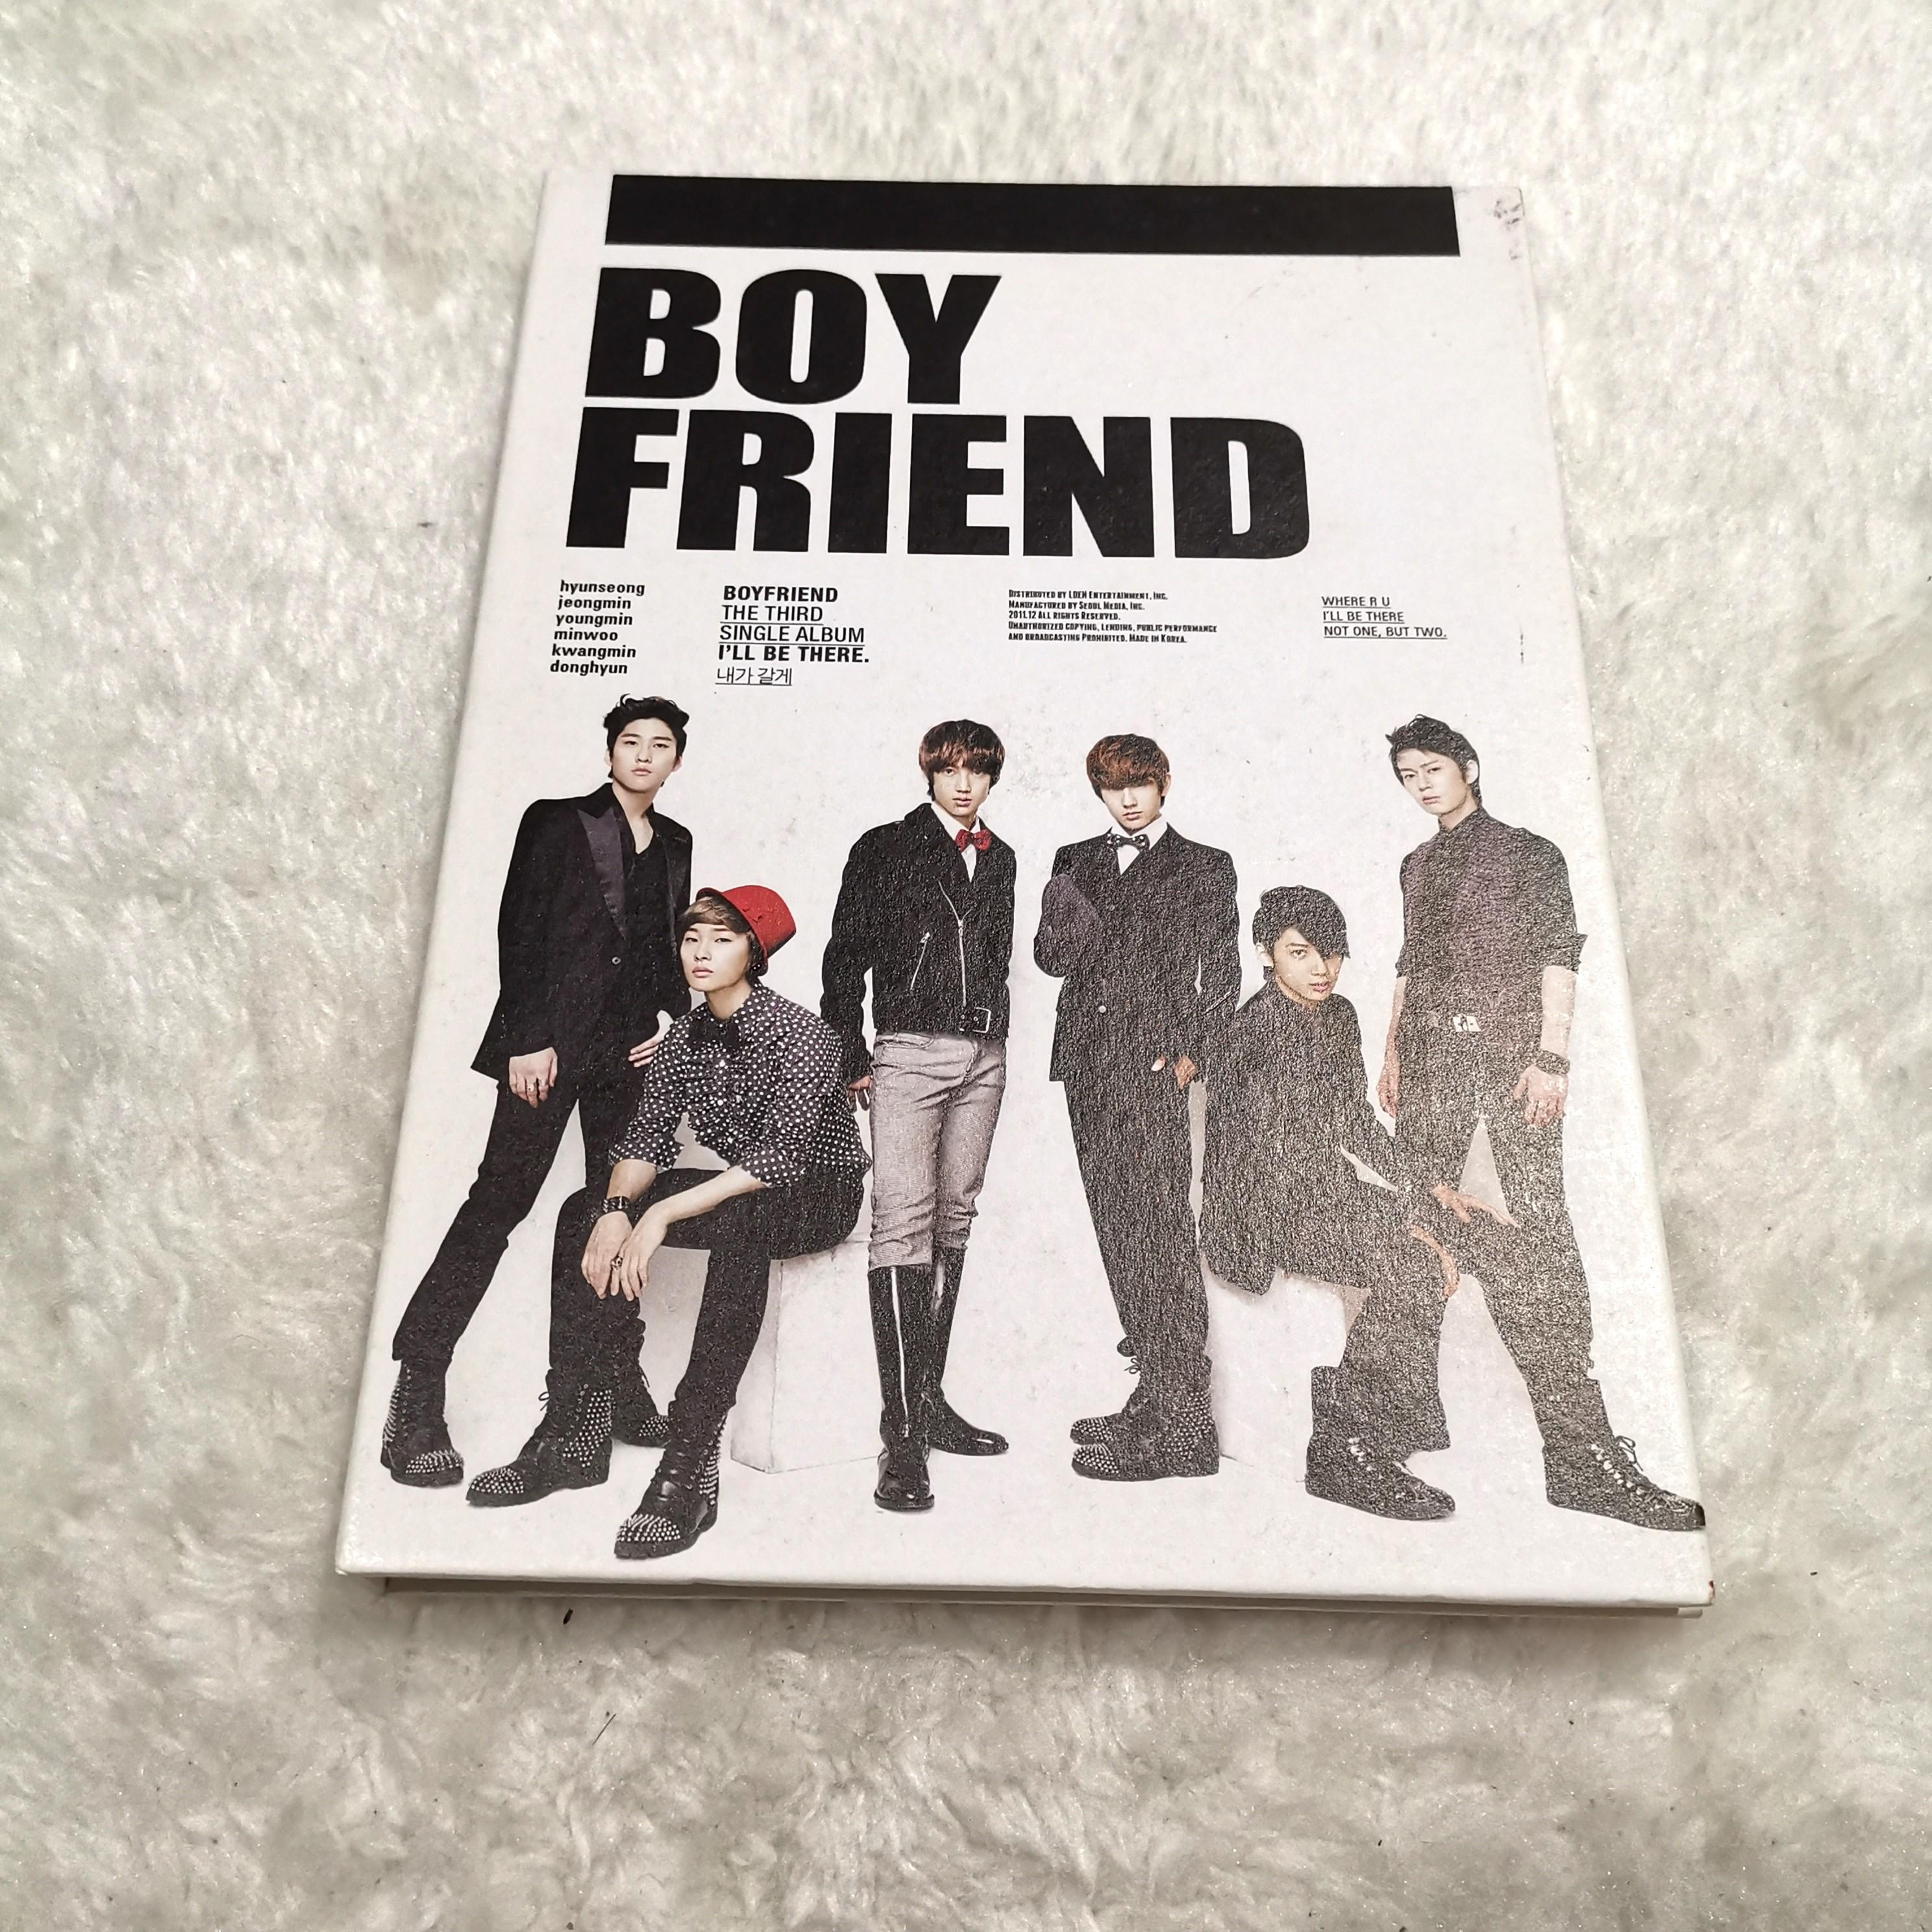 [PRICE REDUCED] BOYFRIEND THE THIRD SINGLE ALBUM - I'LL BE THERE